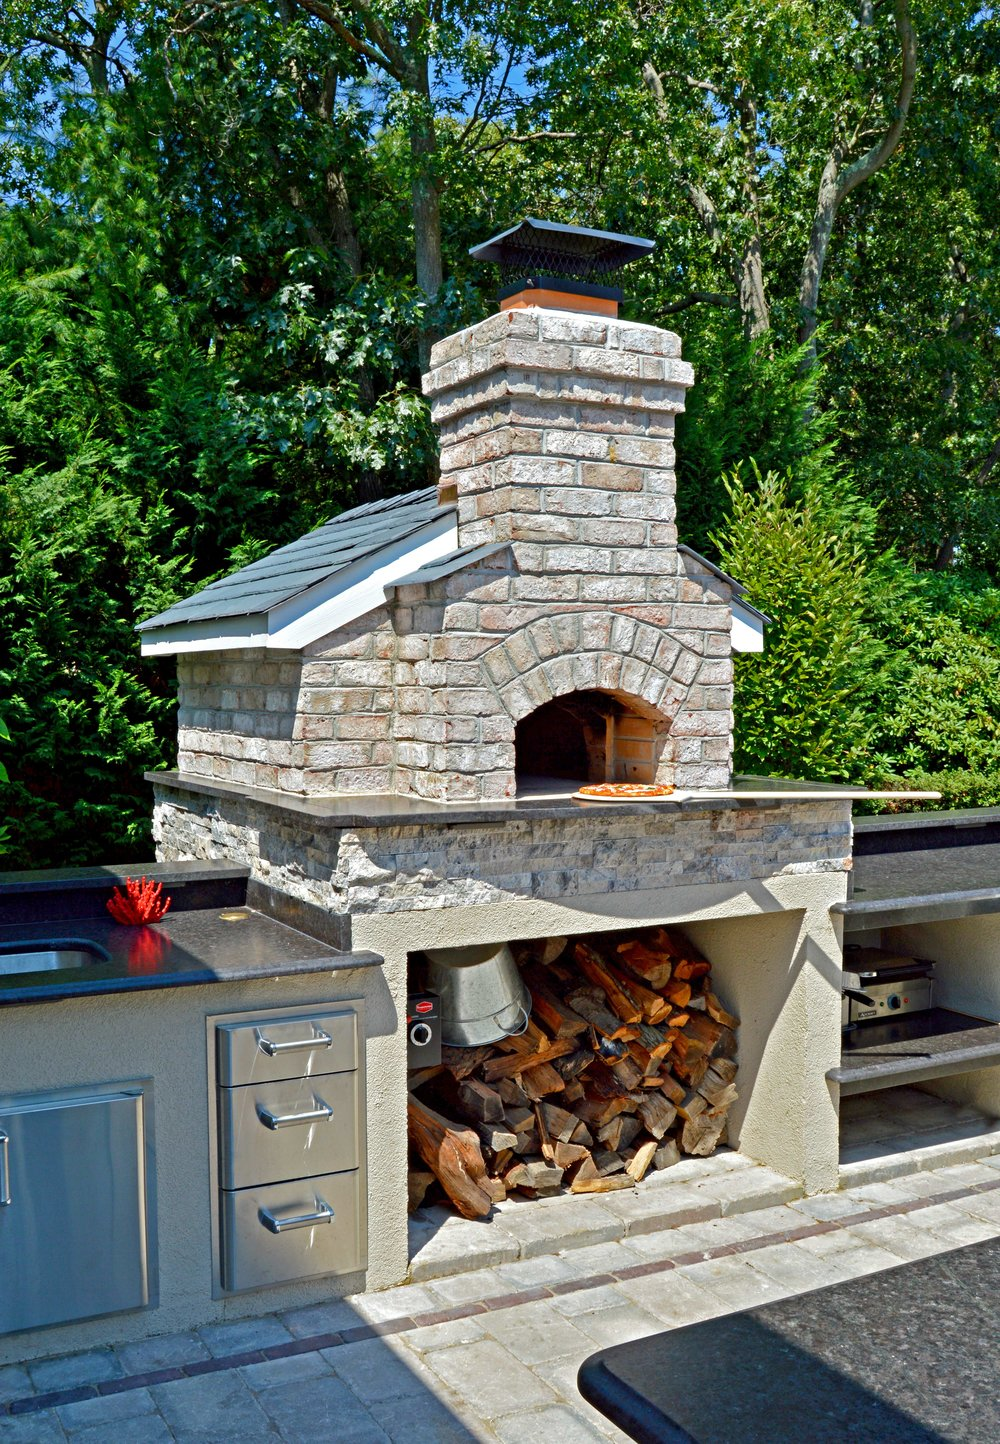 Holbrook, NY outdoor kitchen with sink and pizza oven